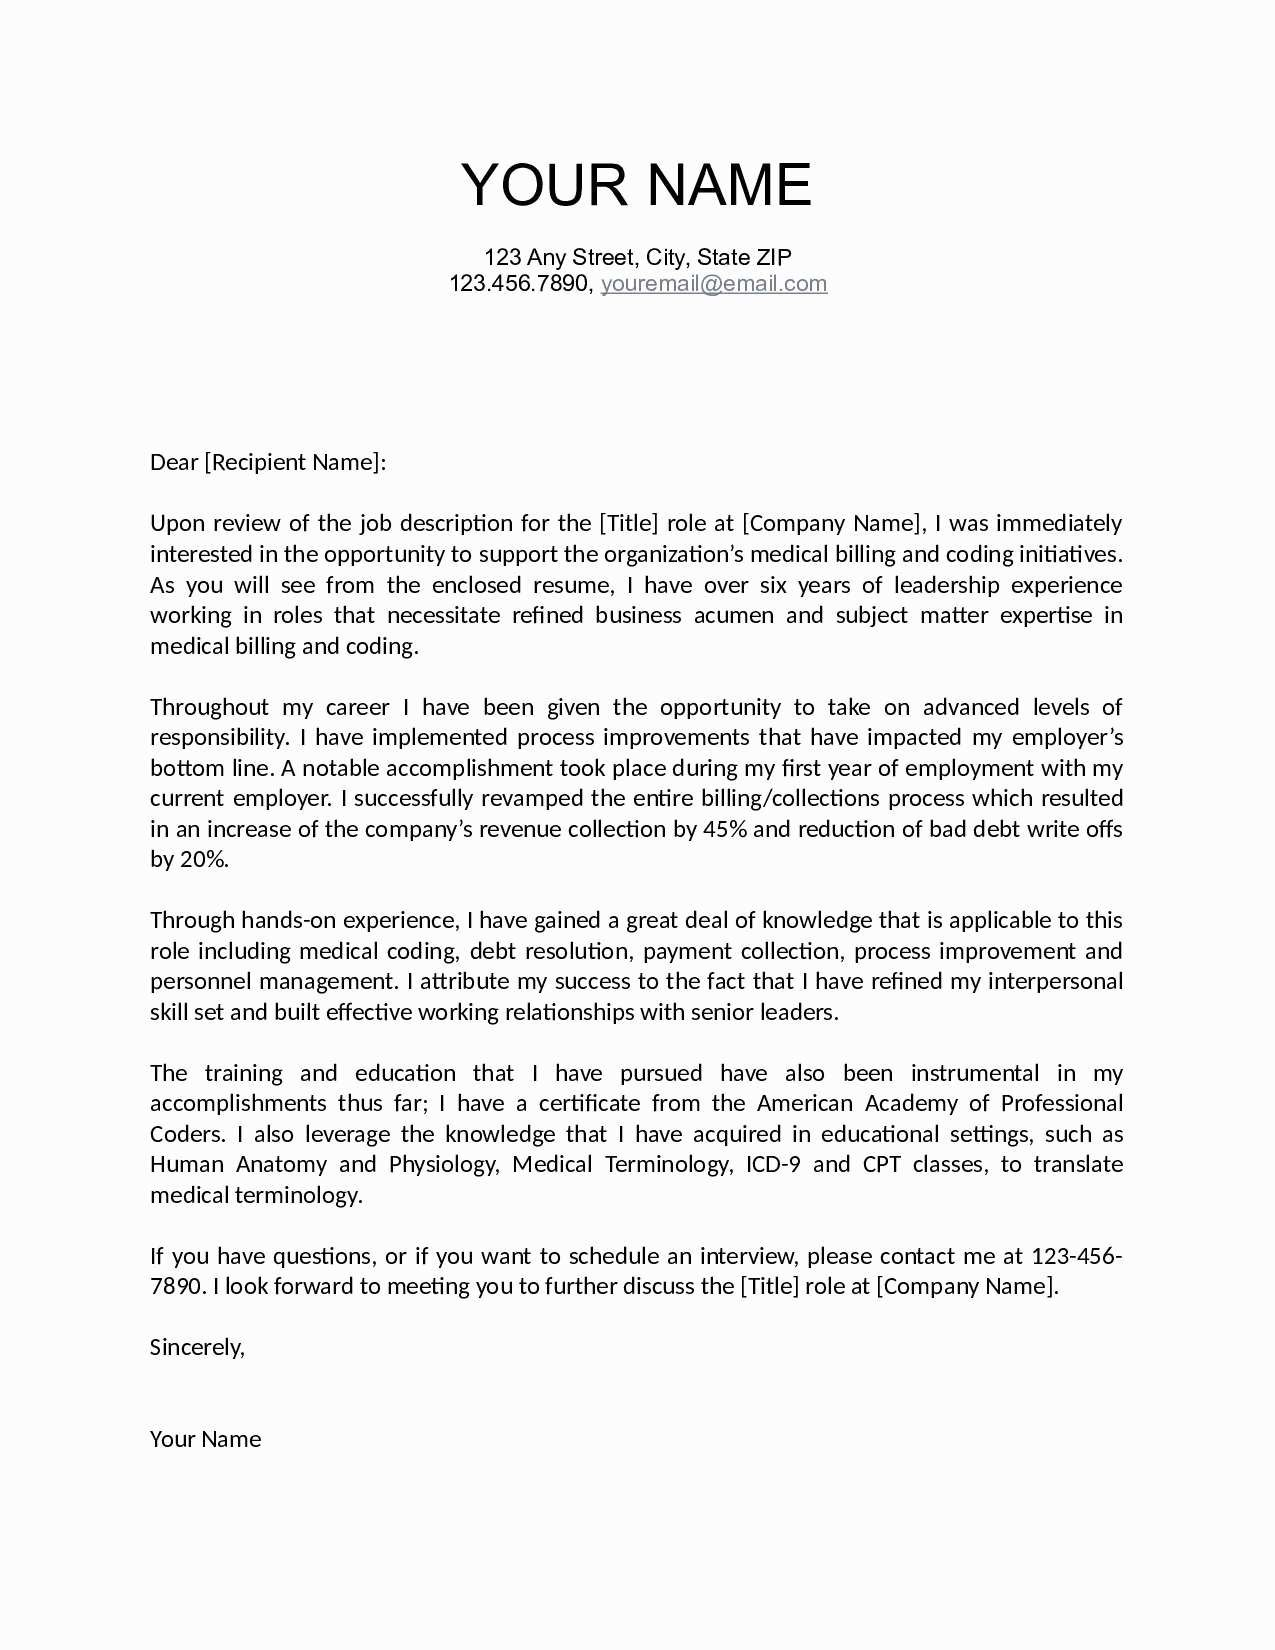 Generic Letter Of Intent Template - Letter Intent Examples for A Job New Job Fer Letter Template Us